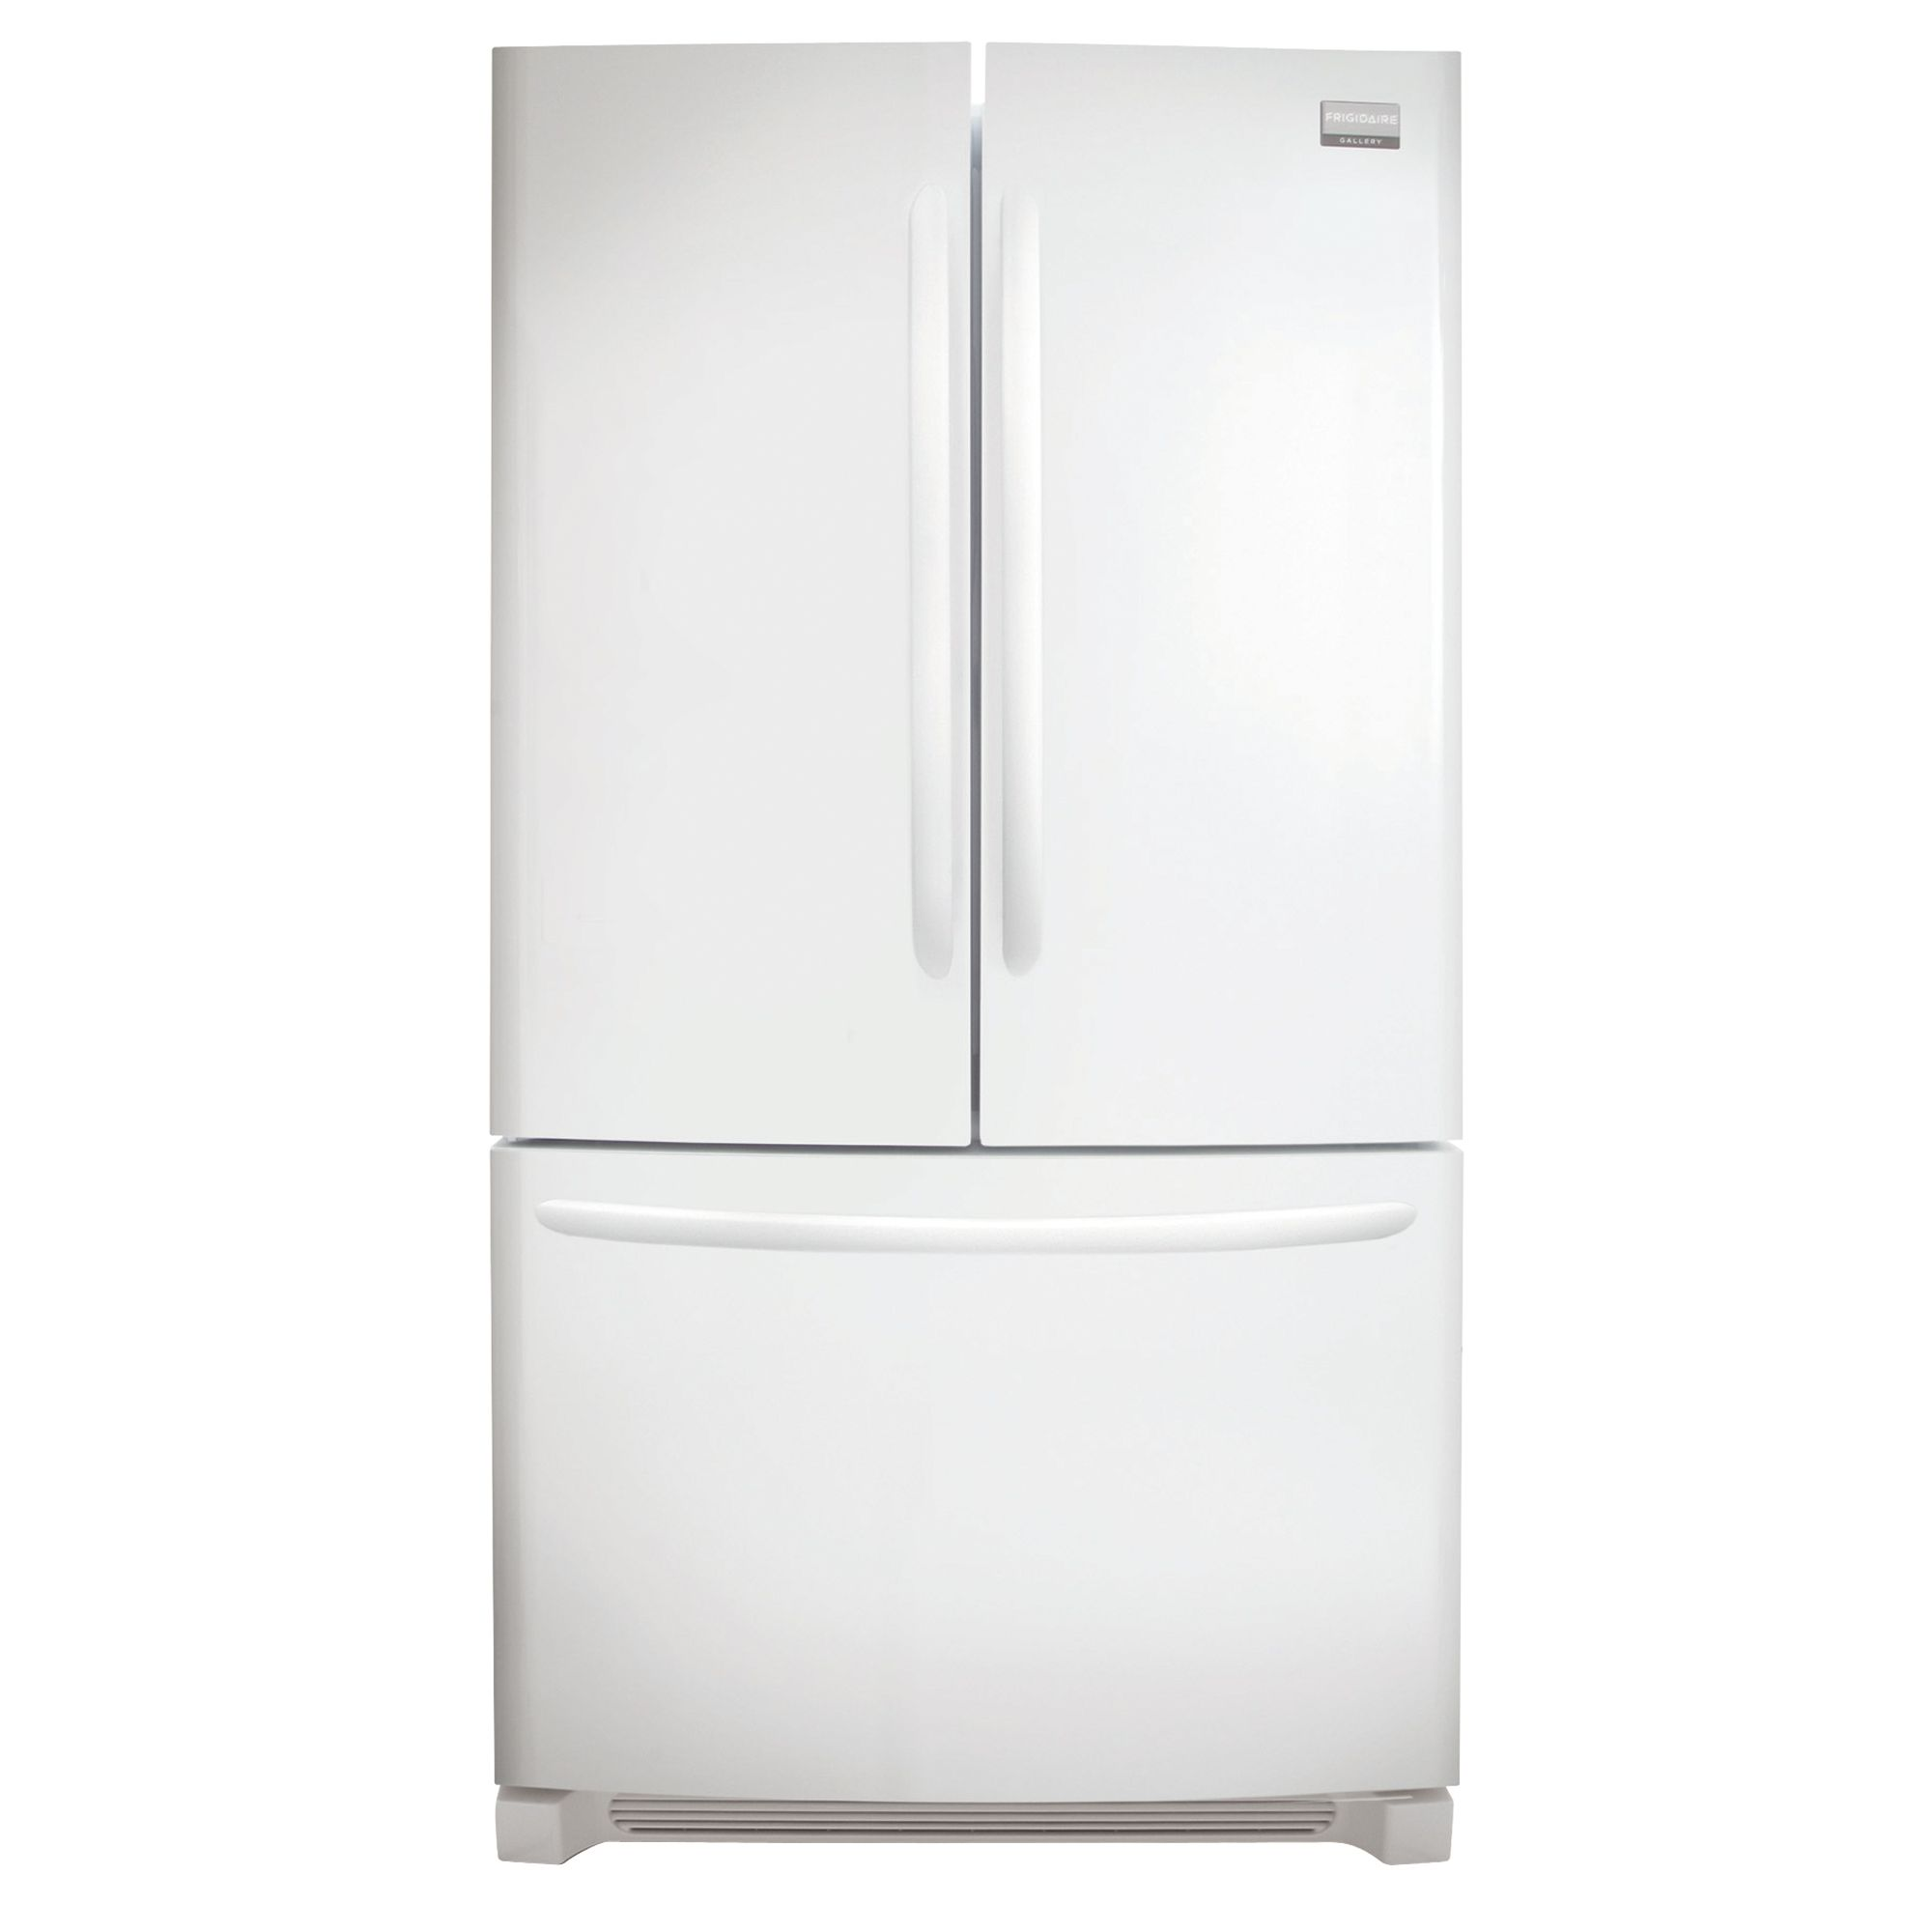 25.8 cu. ft. French-Door Bottom-Freezer Refrigerator (FGUN2642L)                                                                 at mygofer.com